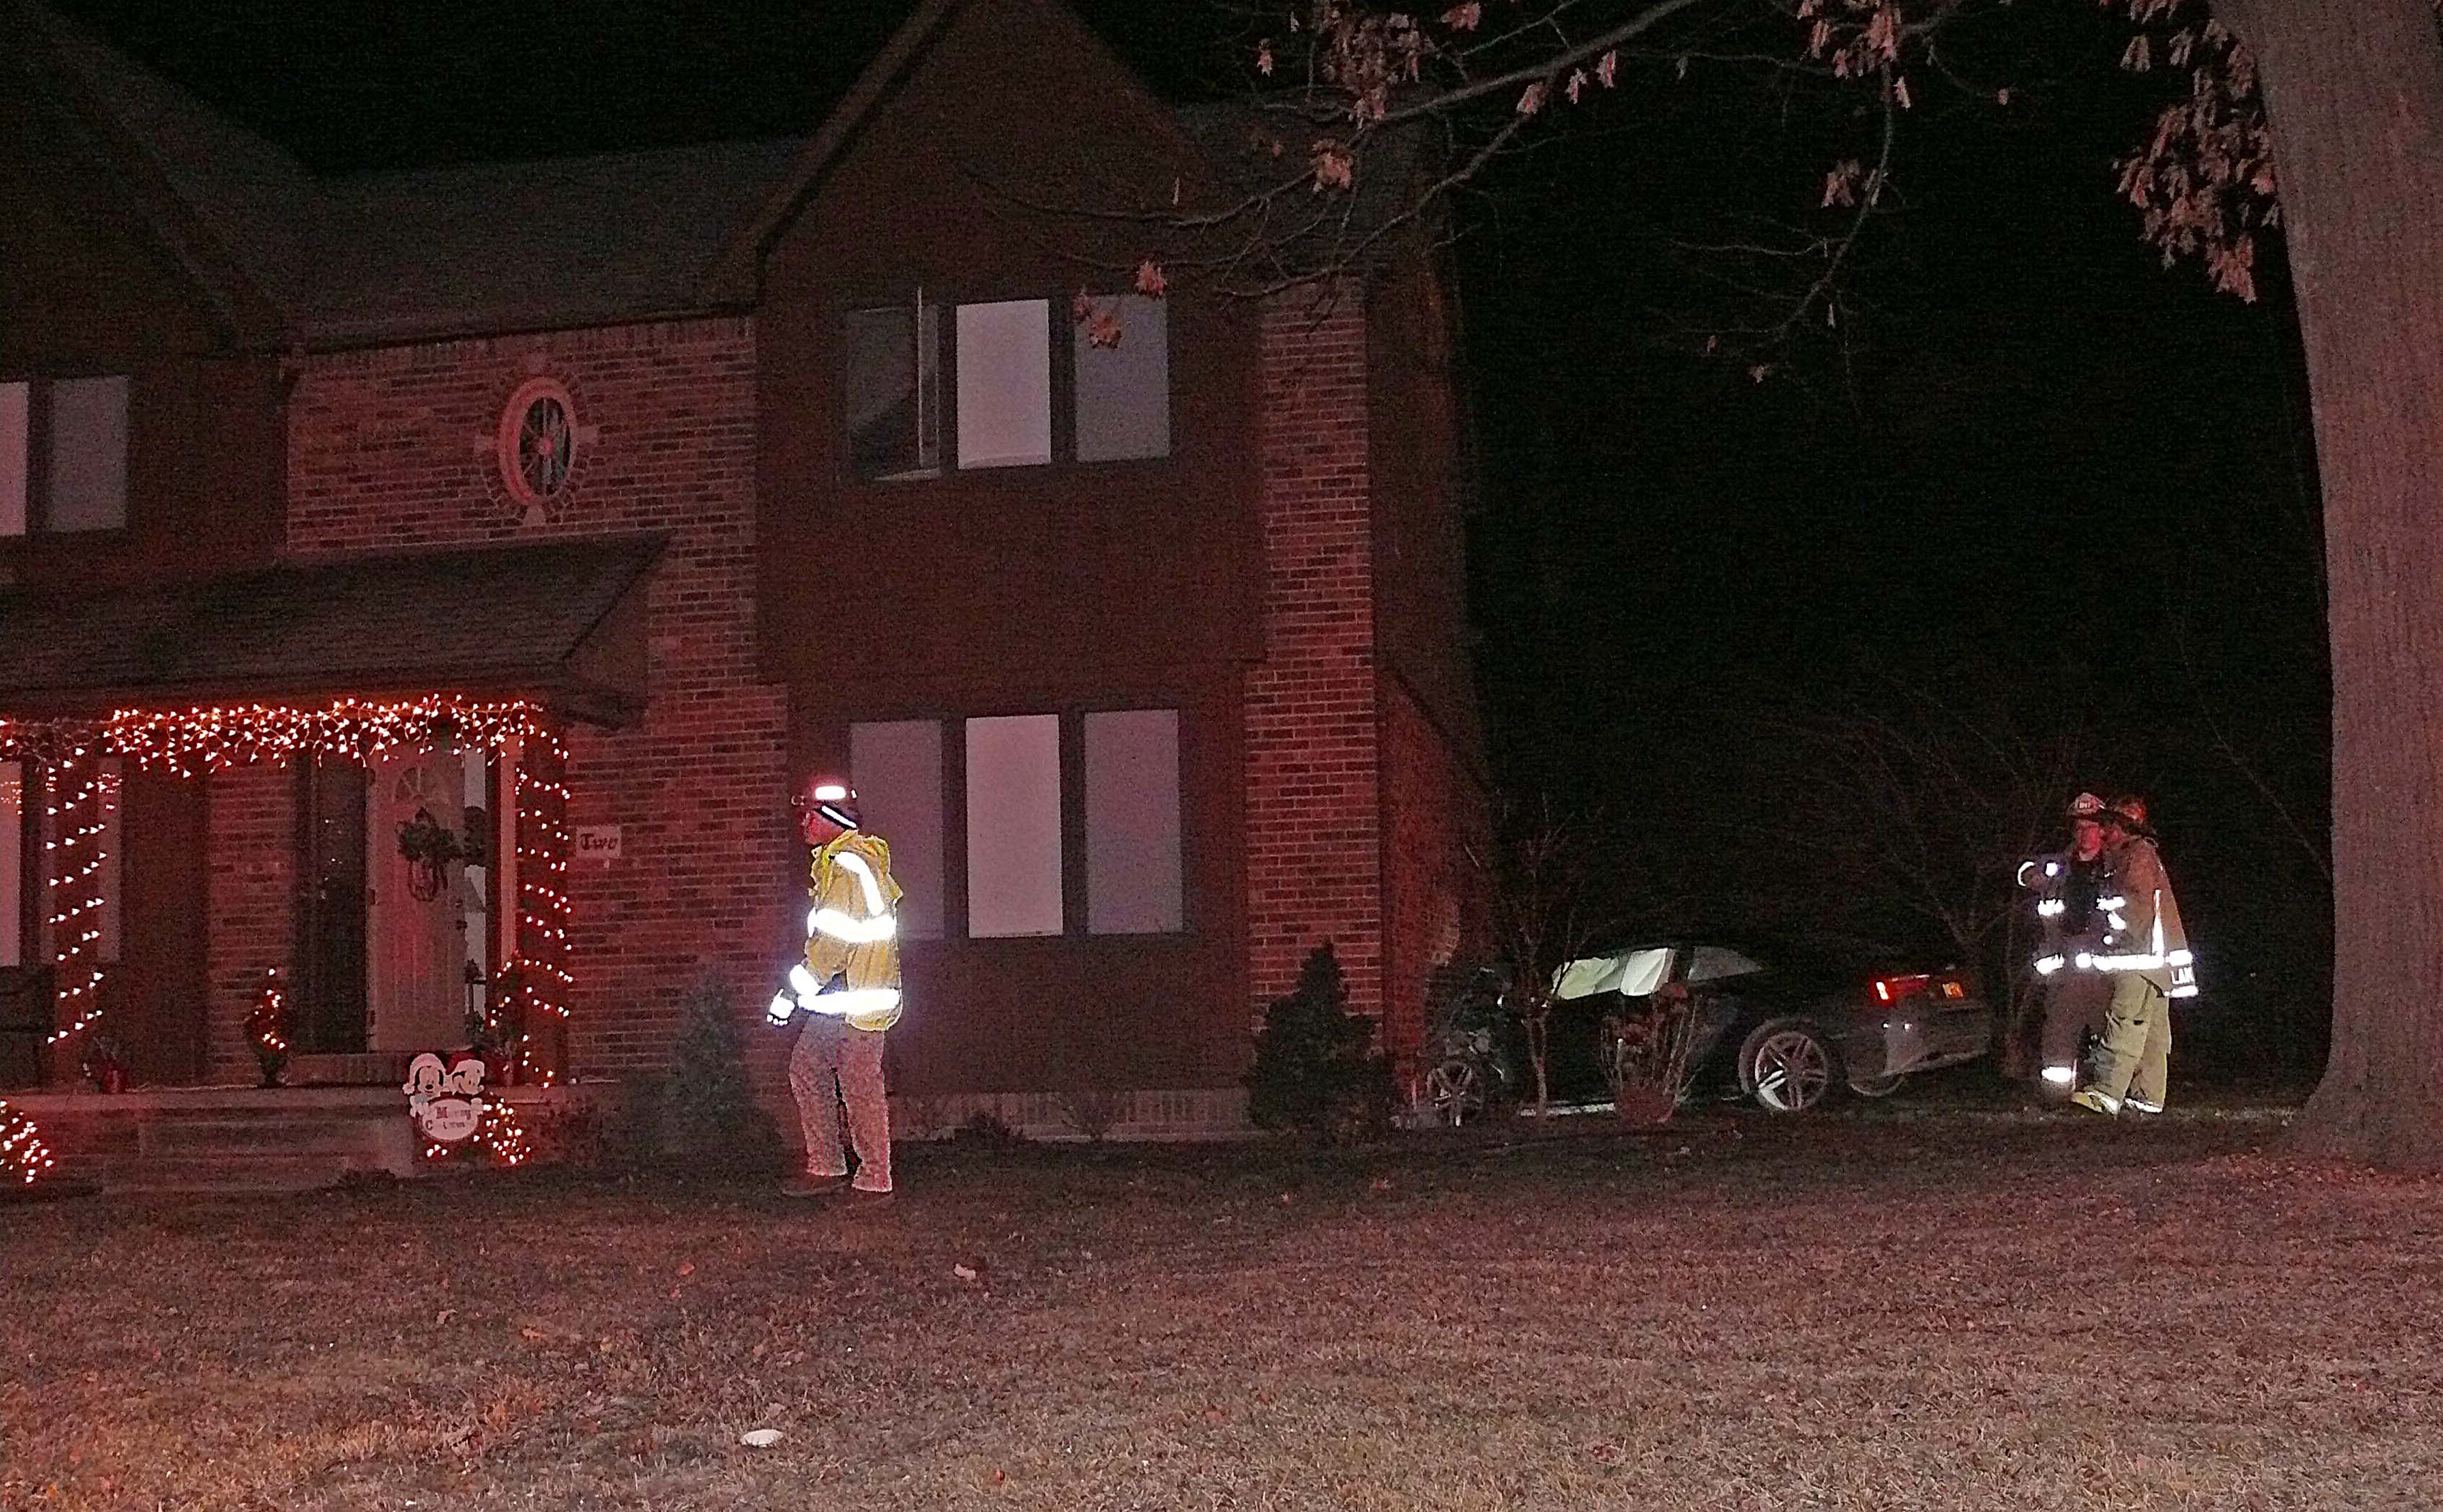 Emergency personnel at the scene where a car crashed into 2 Nottingham Terrace early Friday. (Joanne McNamara/Special to The News)